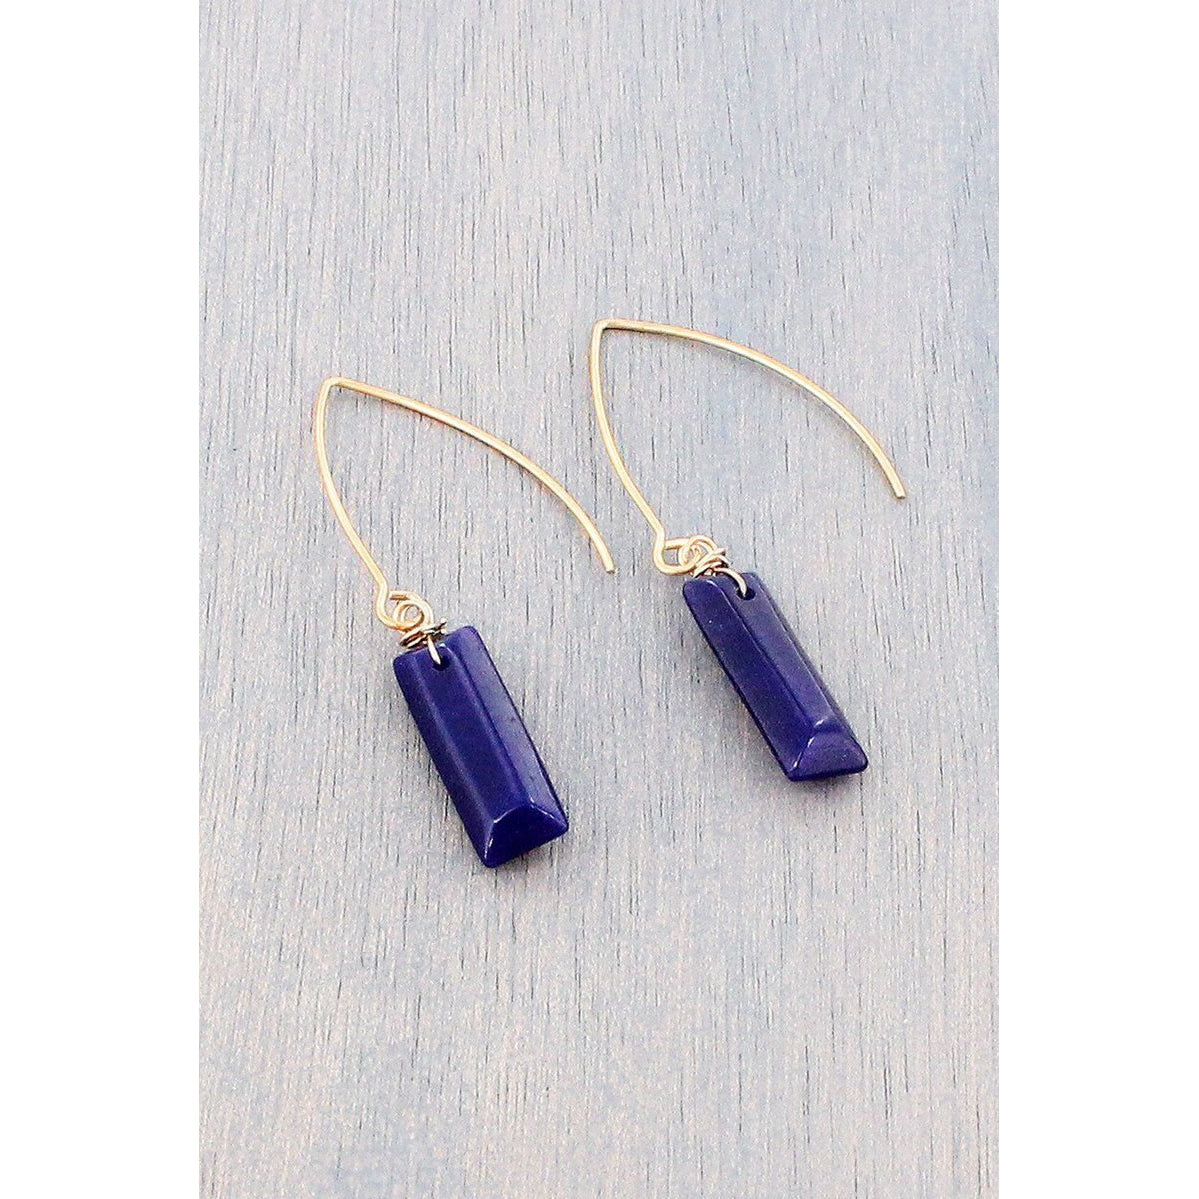 Blue Gemstone Bar Worn Gold Tone Earrings